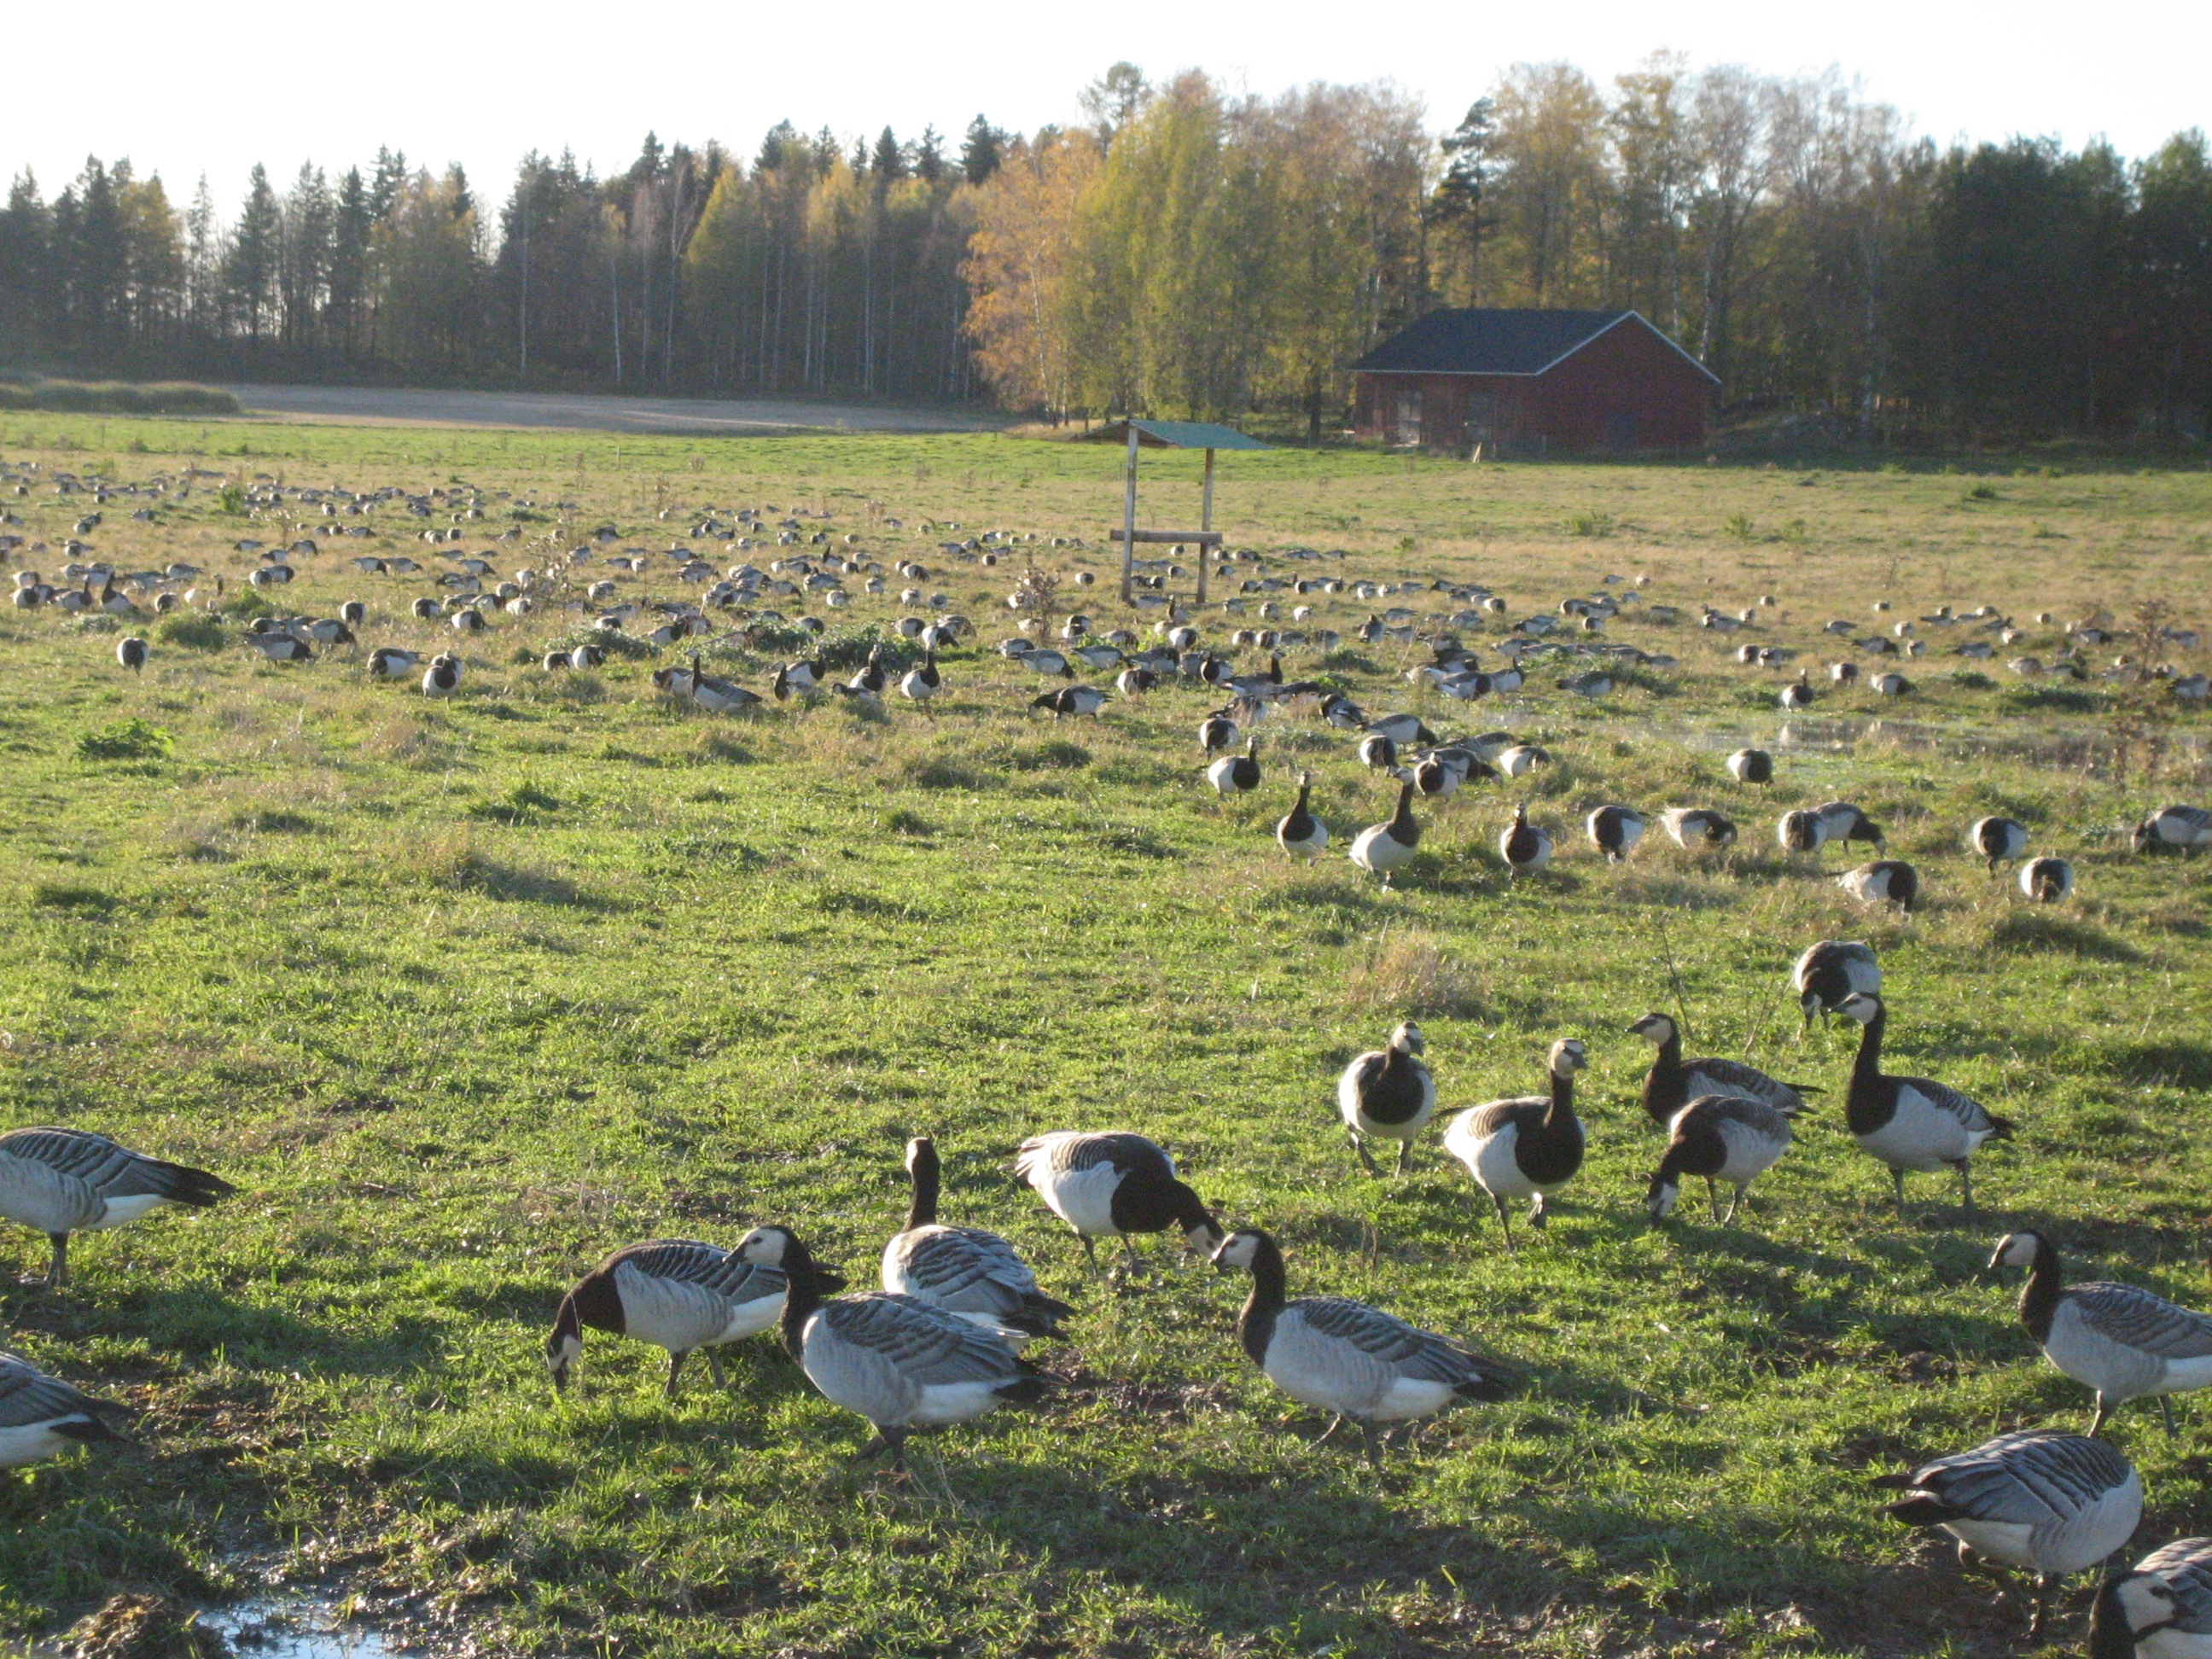 Canada Goose coats sale official - Barnacle goose - Wikipedia, the free encyclopedia